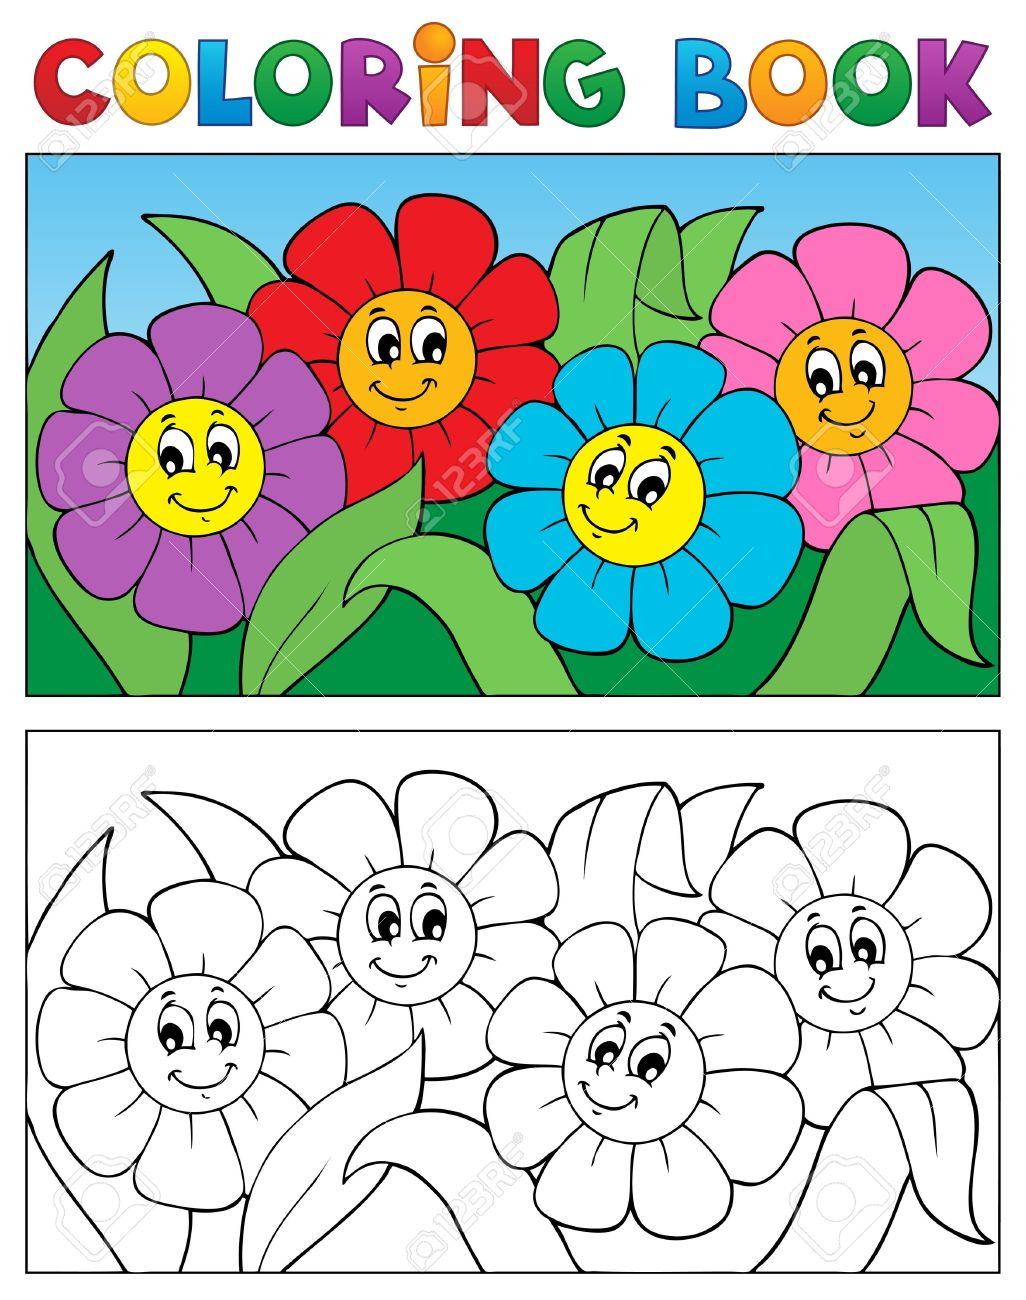 Coloring Book With Flower Theme 1.